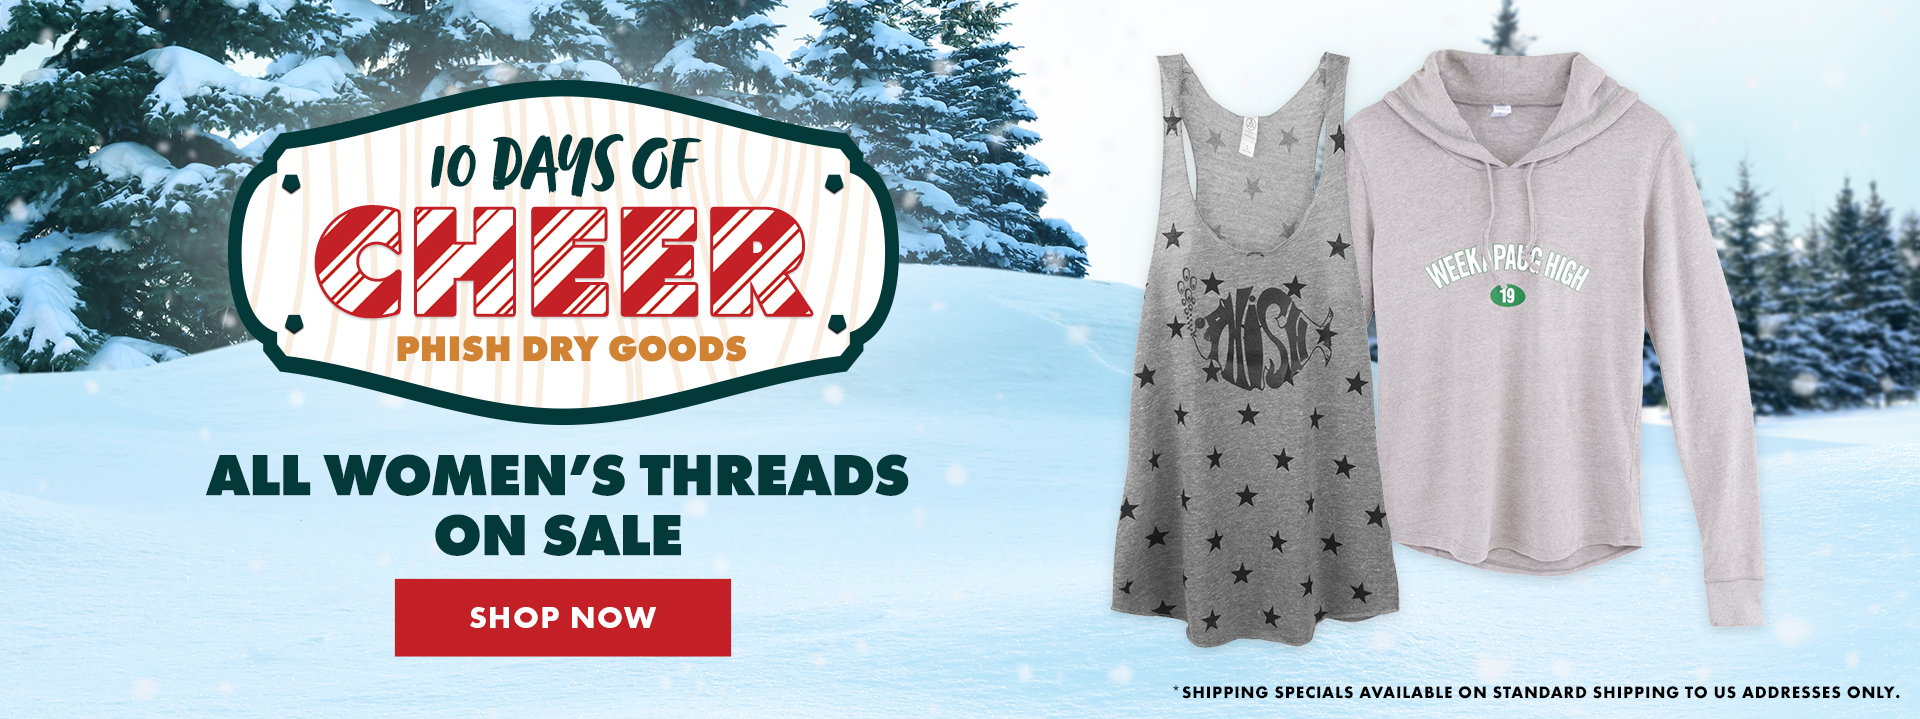 Women's Threads On Sale - Today Only at Phish Dry Goods!